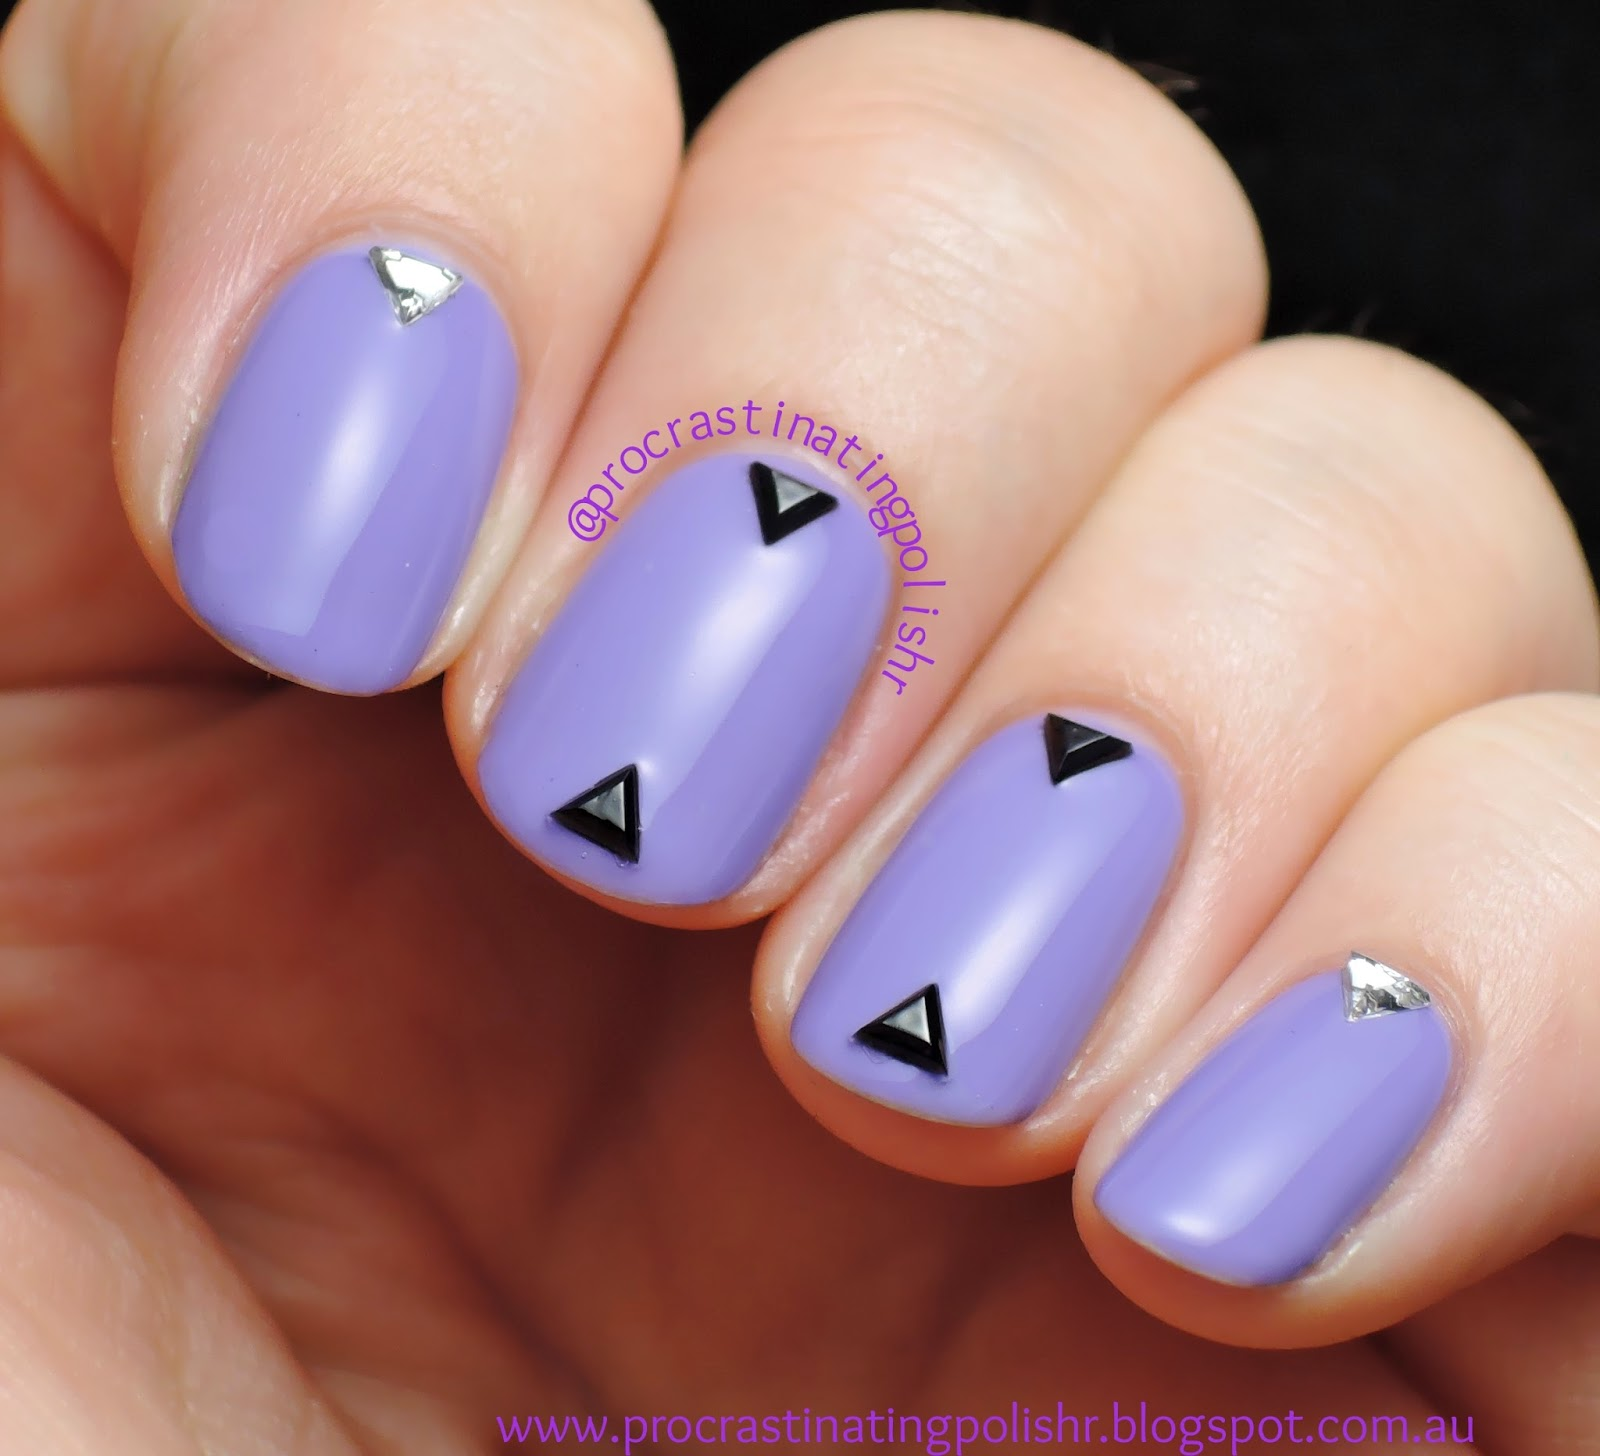 Nail art with Mckfresh Glowing Posies & Born Pretty triangle studs